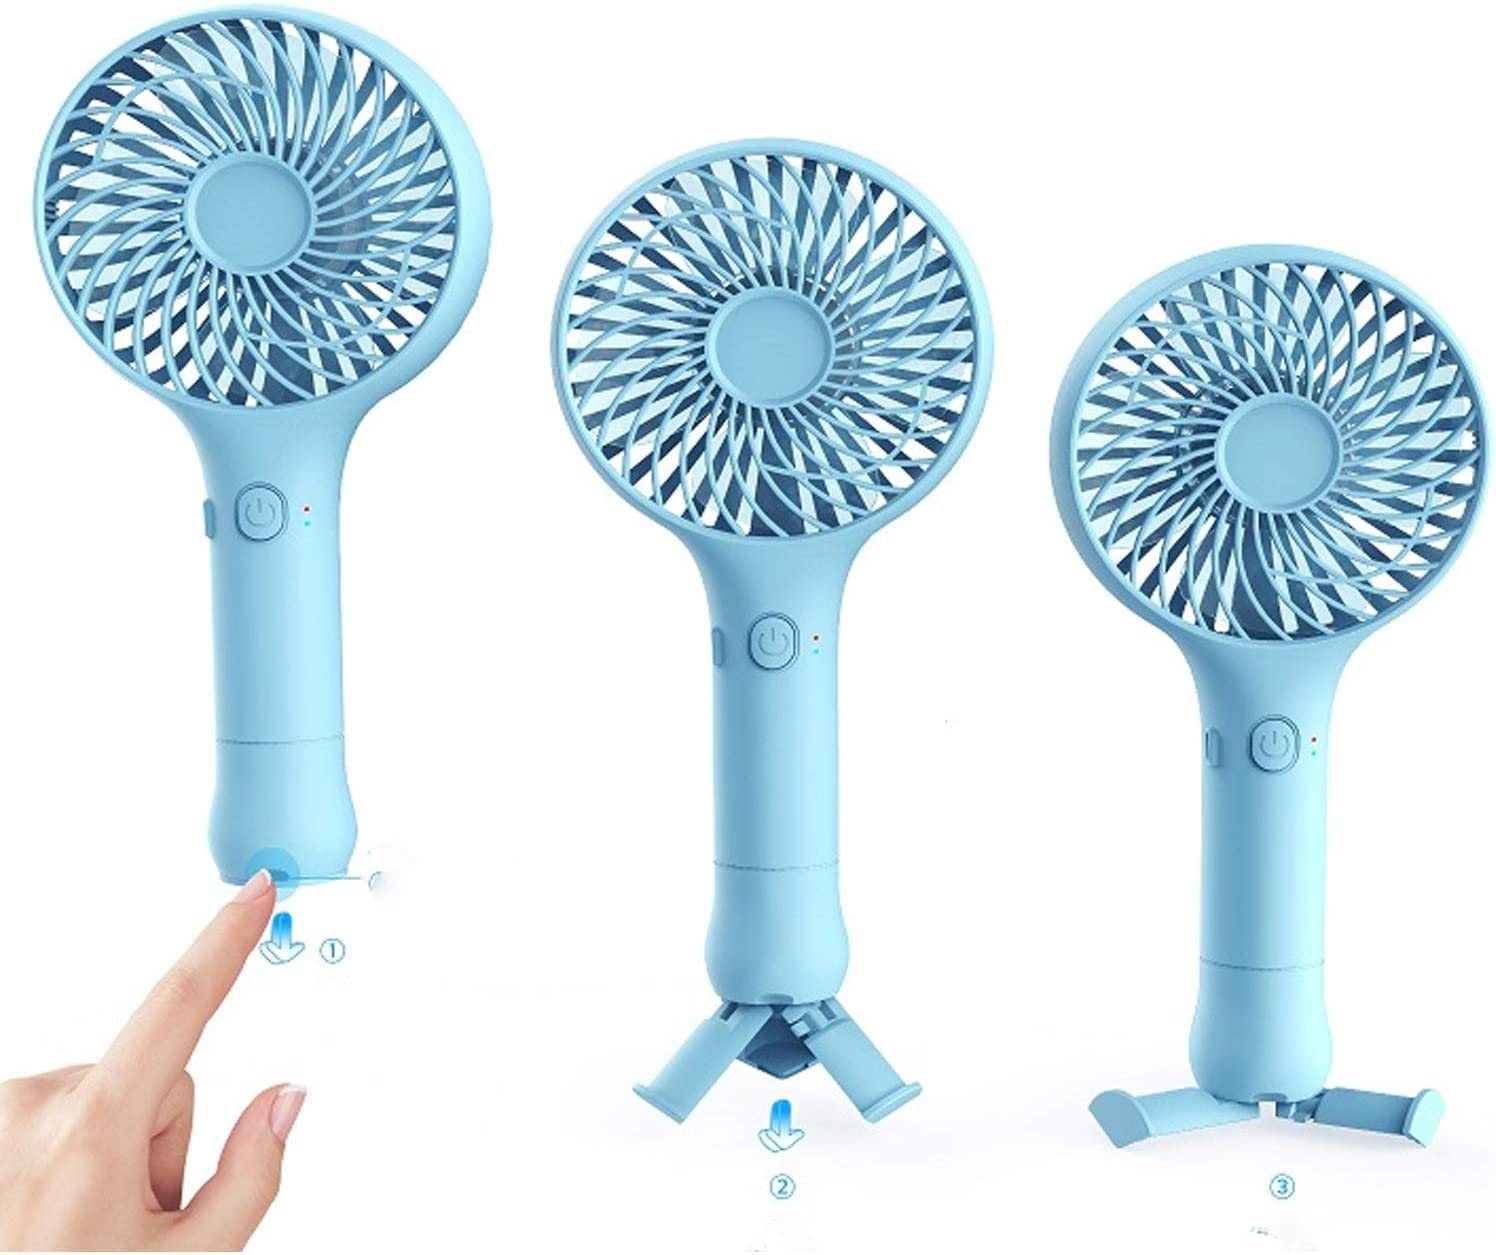 Color : White Air Cooler Portable Tripod Mini Fan Charging Bedside USB Silent Handheld Fan Home Office Dormitory Desktop Fan